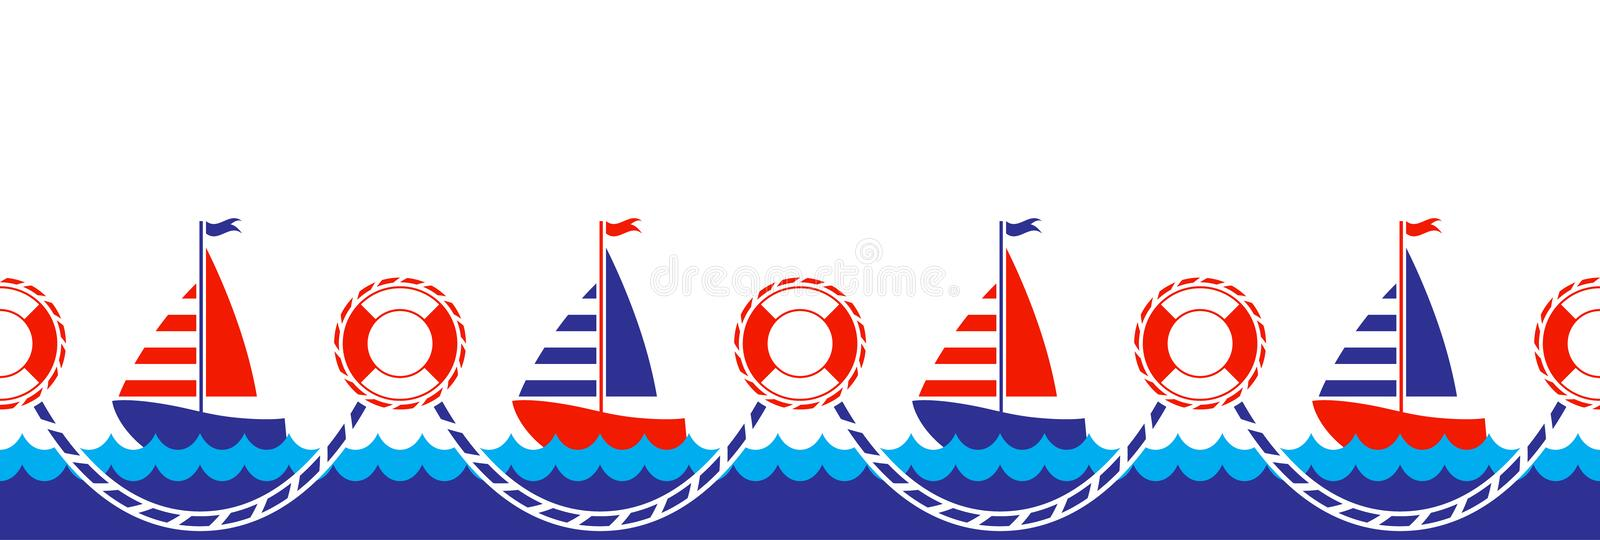 nautical border stock vector illustration of holiday 20689453 rh dreamstime com Nautical Theme Clip Art Nautical Anchor Clip Art